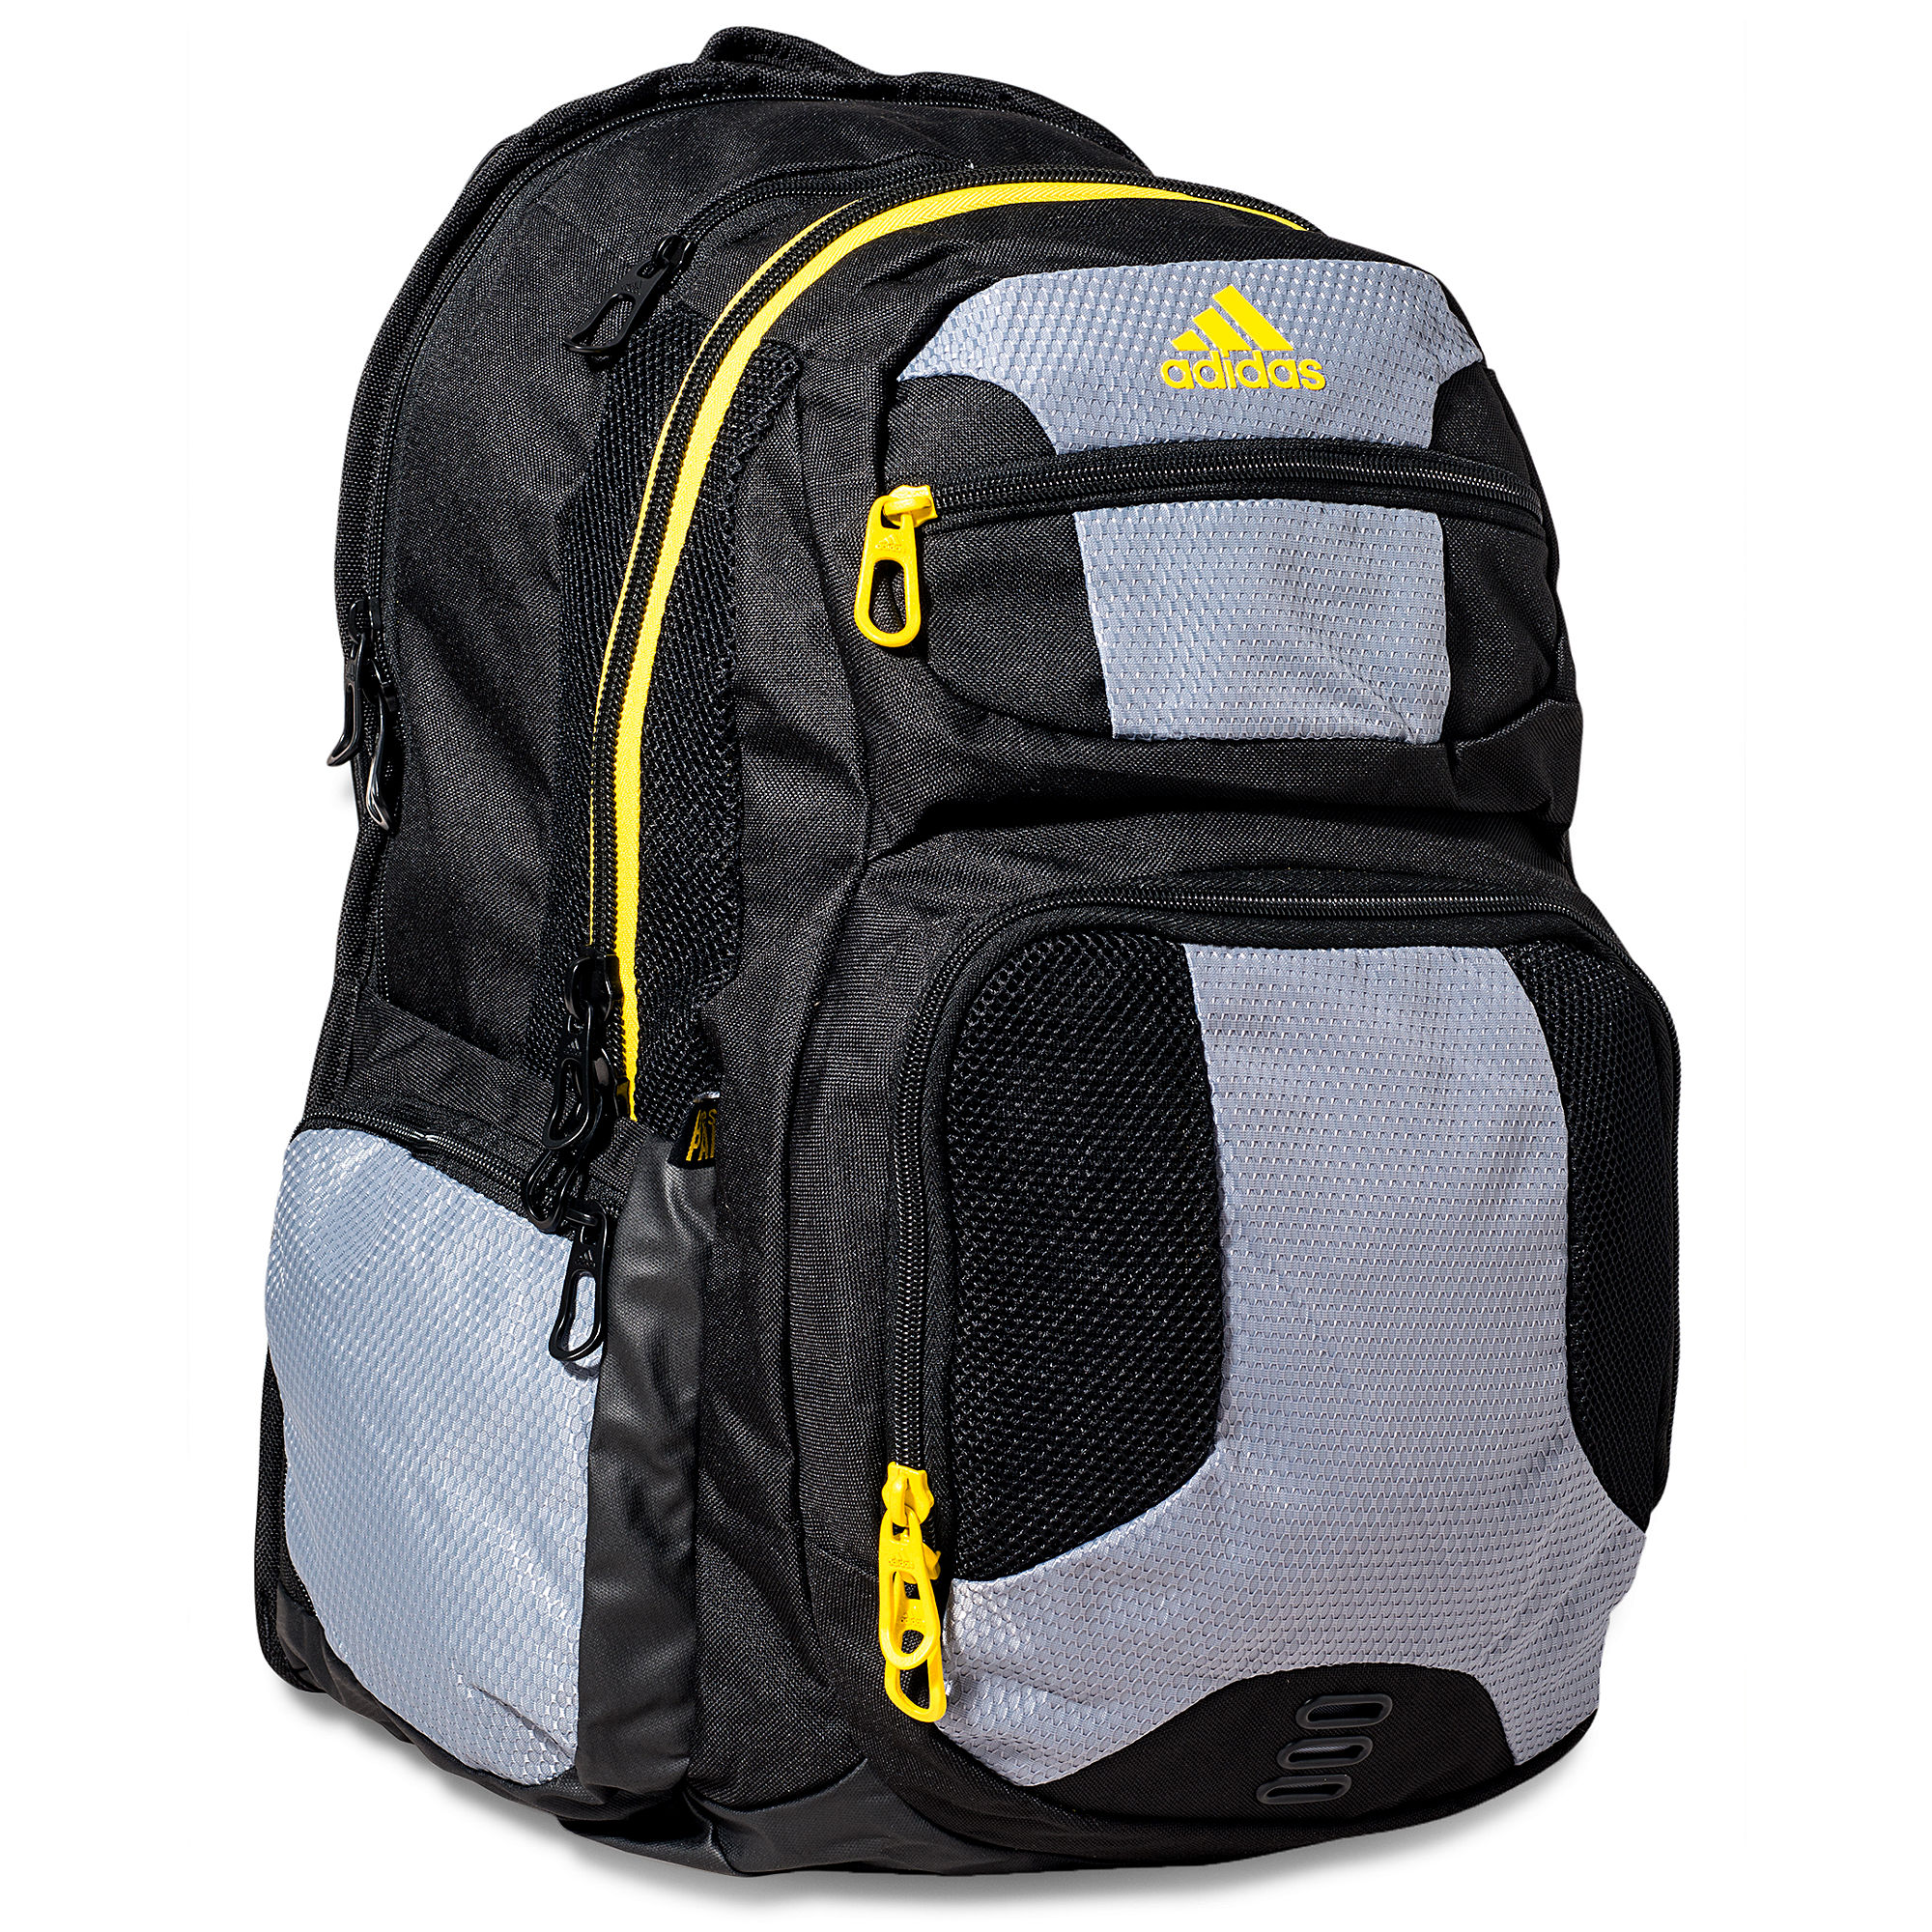 112f6b720f Lyst - adidas Climacool Strength II Backpack in Gray for Men